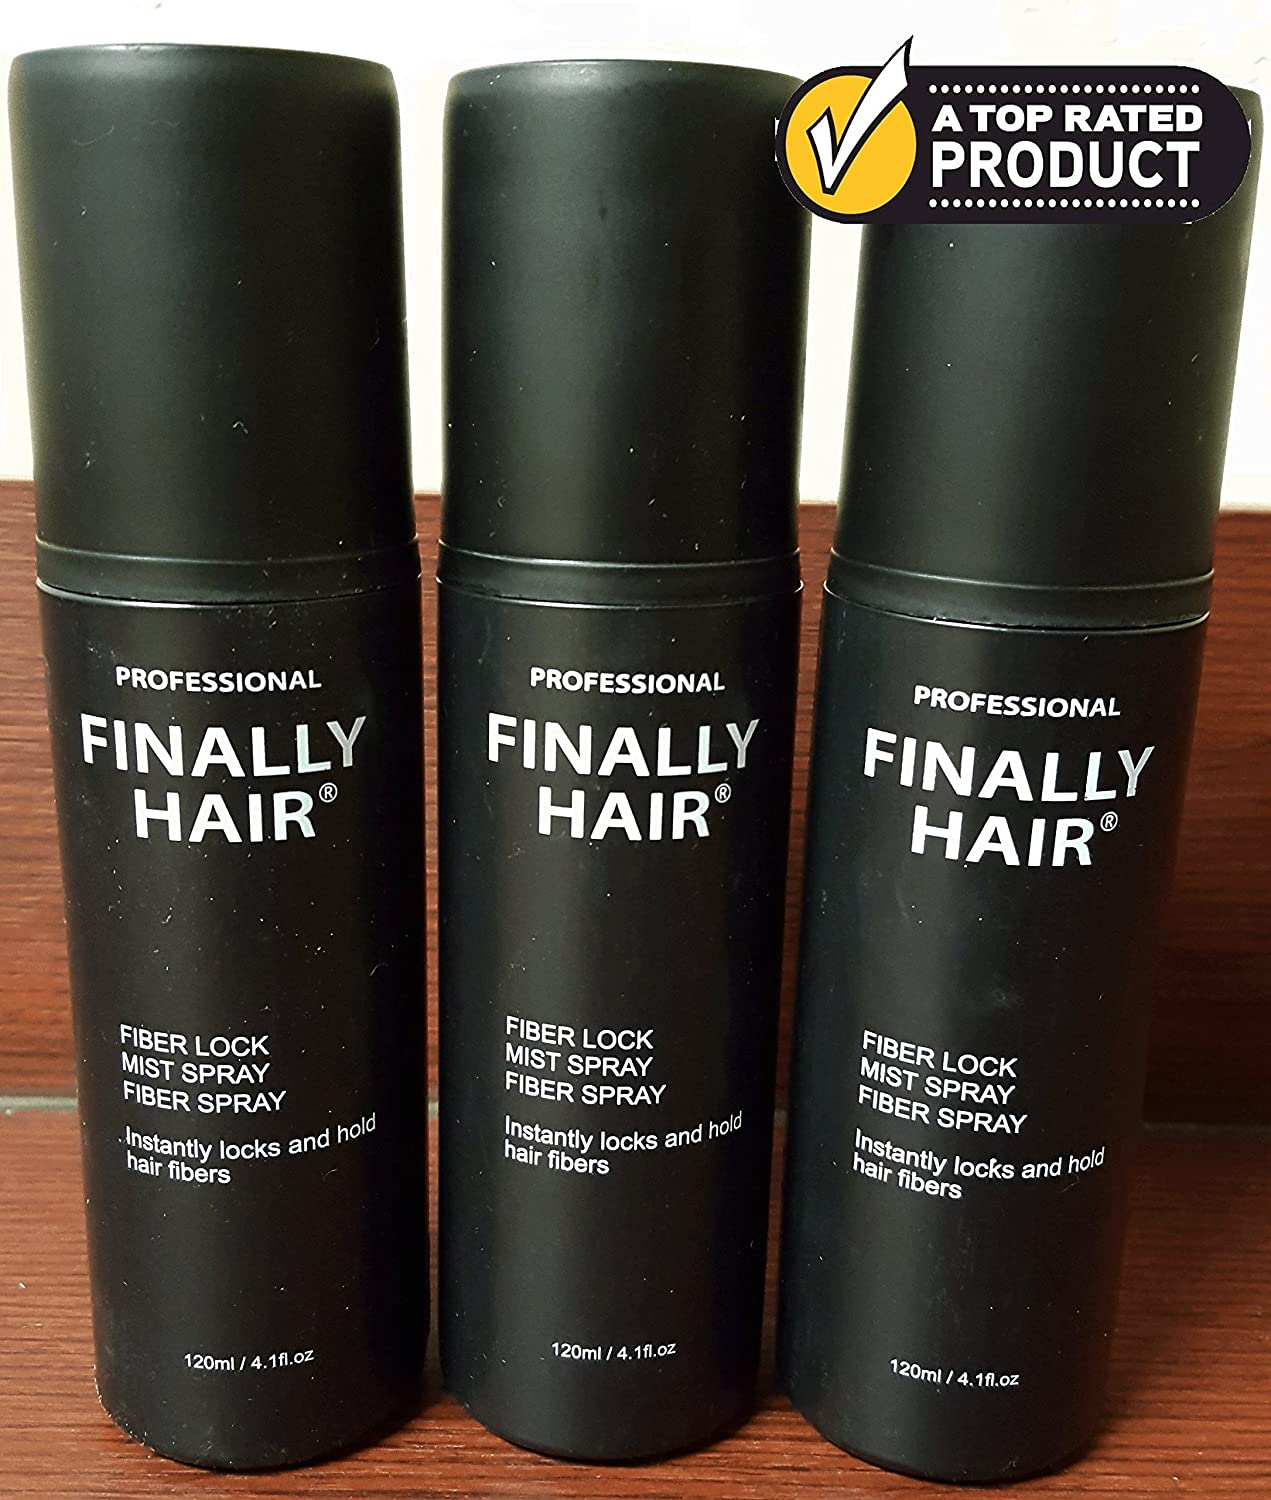 Hair Building Fiber STRONG Fiber Lock Hair Spray 3 Pack by Finally Hair (can be used with competitors fibers like Toppik, Xfusion, Strand, Cuuva, Efficient, Fibrex, Bosley) Finally Hair Corporation